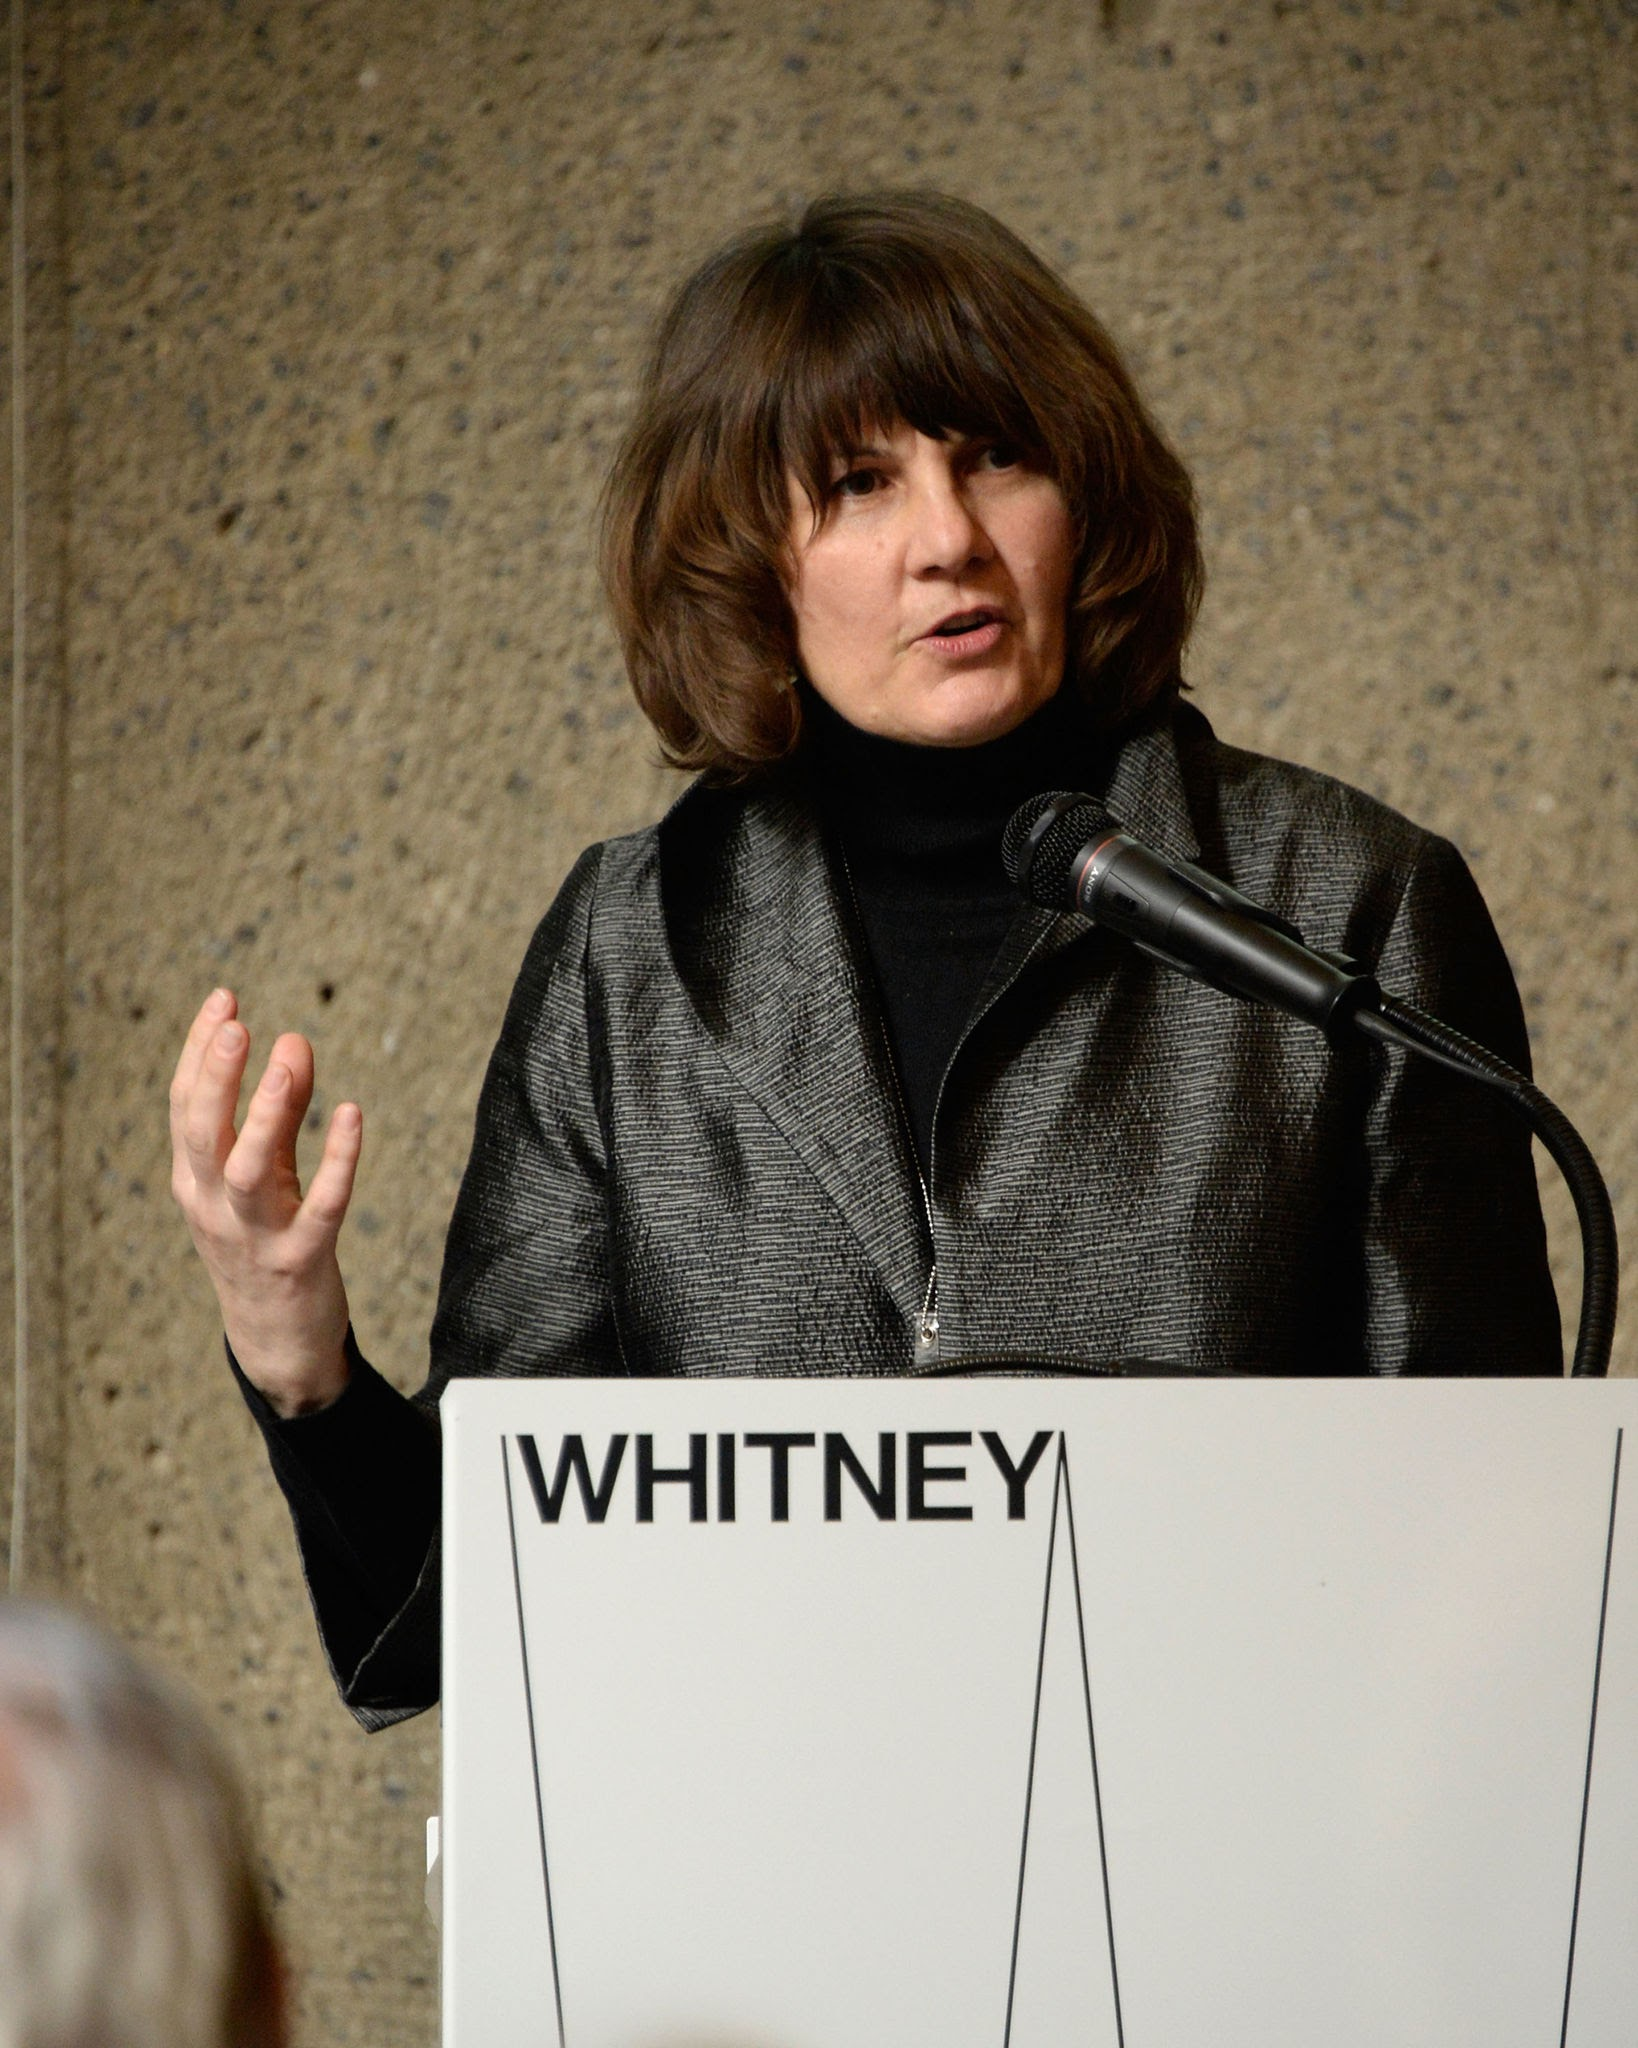 Michelle Grabner stands at a podium that says Whitney. Her arm is raised; she is in the middle of speaking. Michelle has short brown hair with bangs and wears all black.